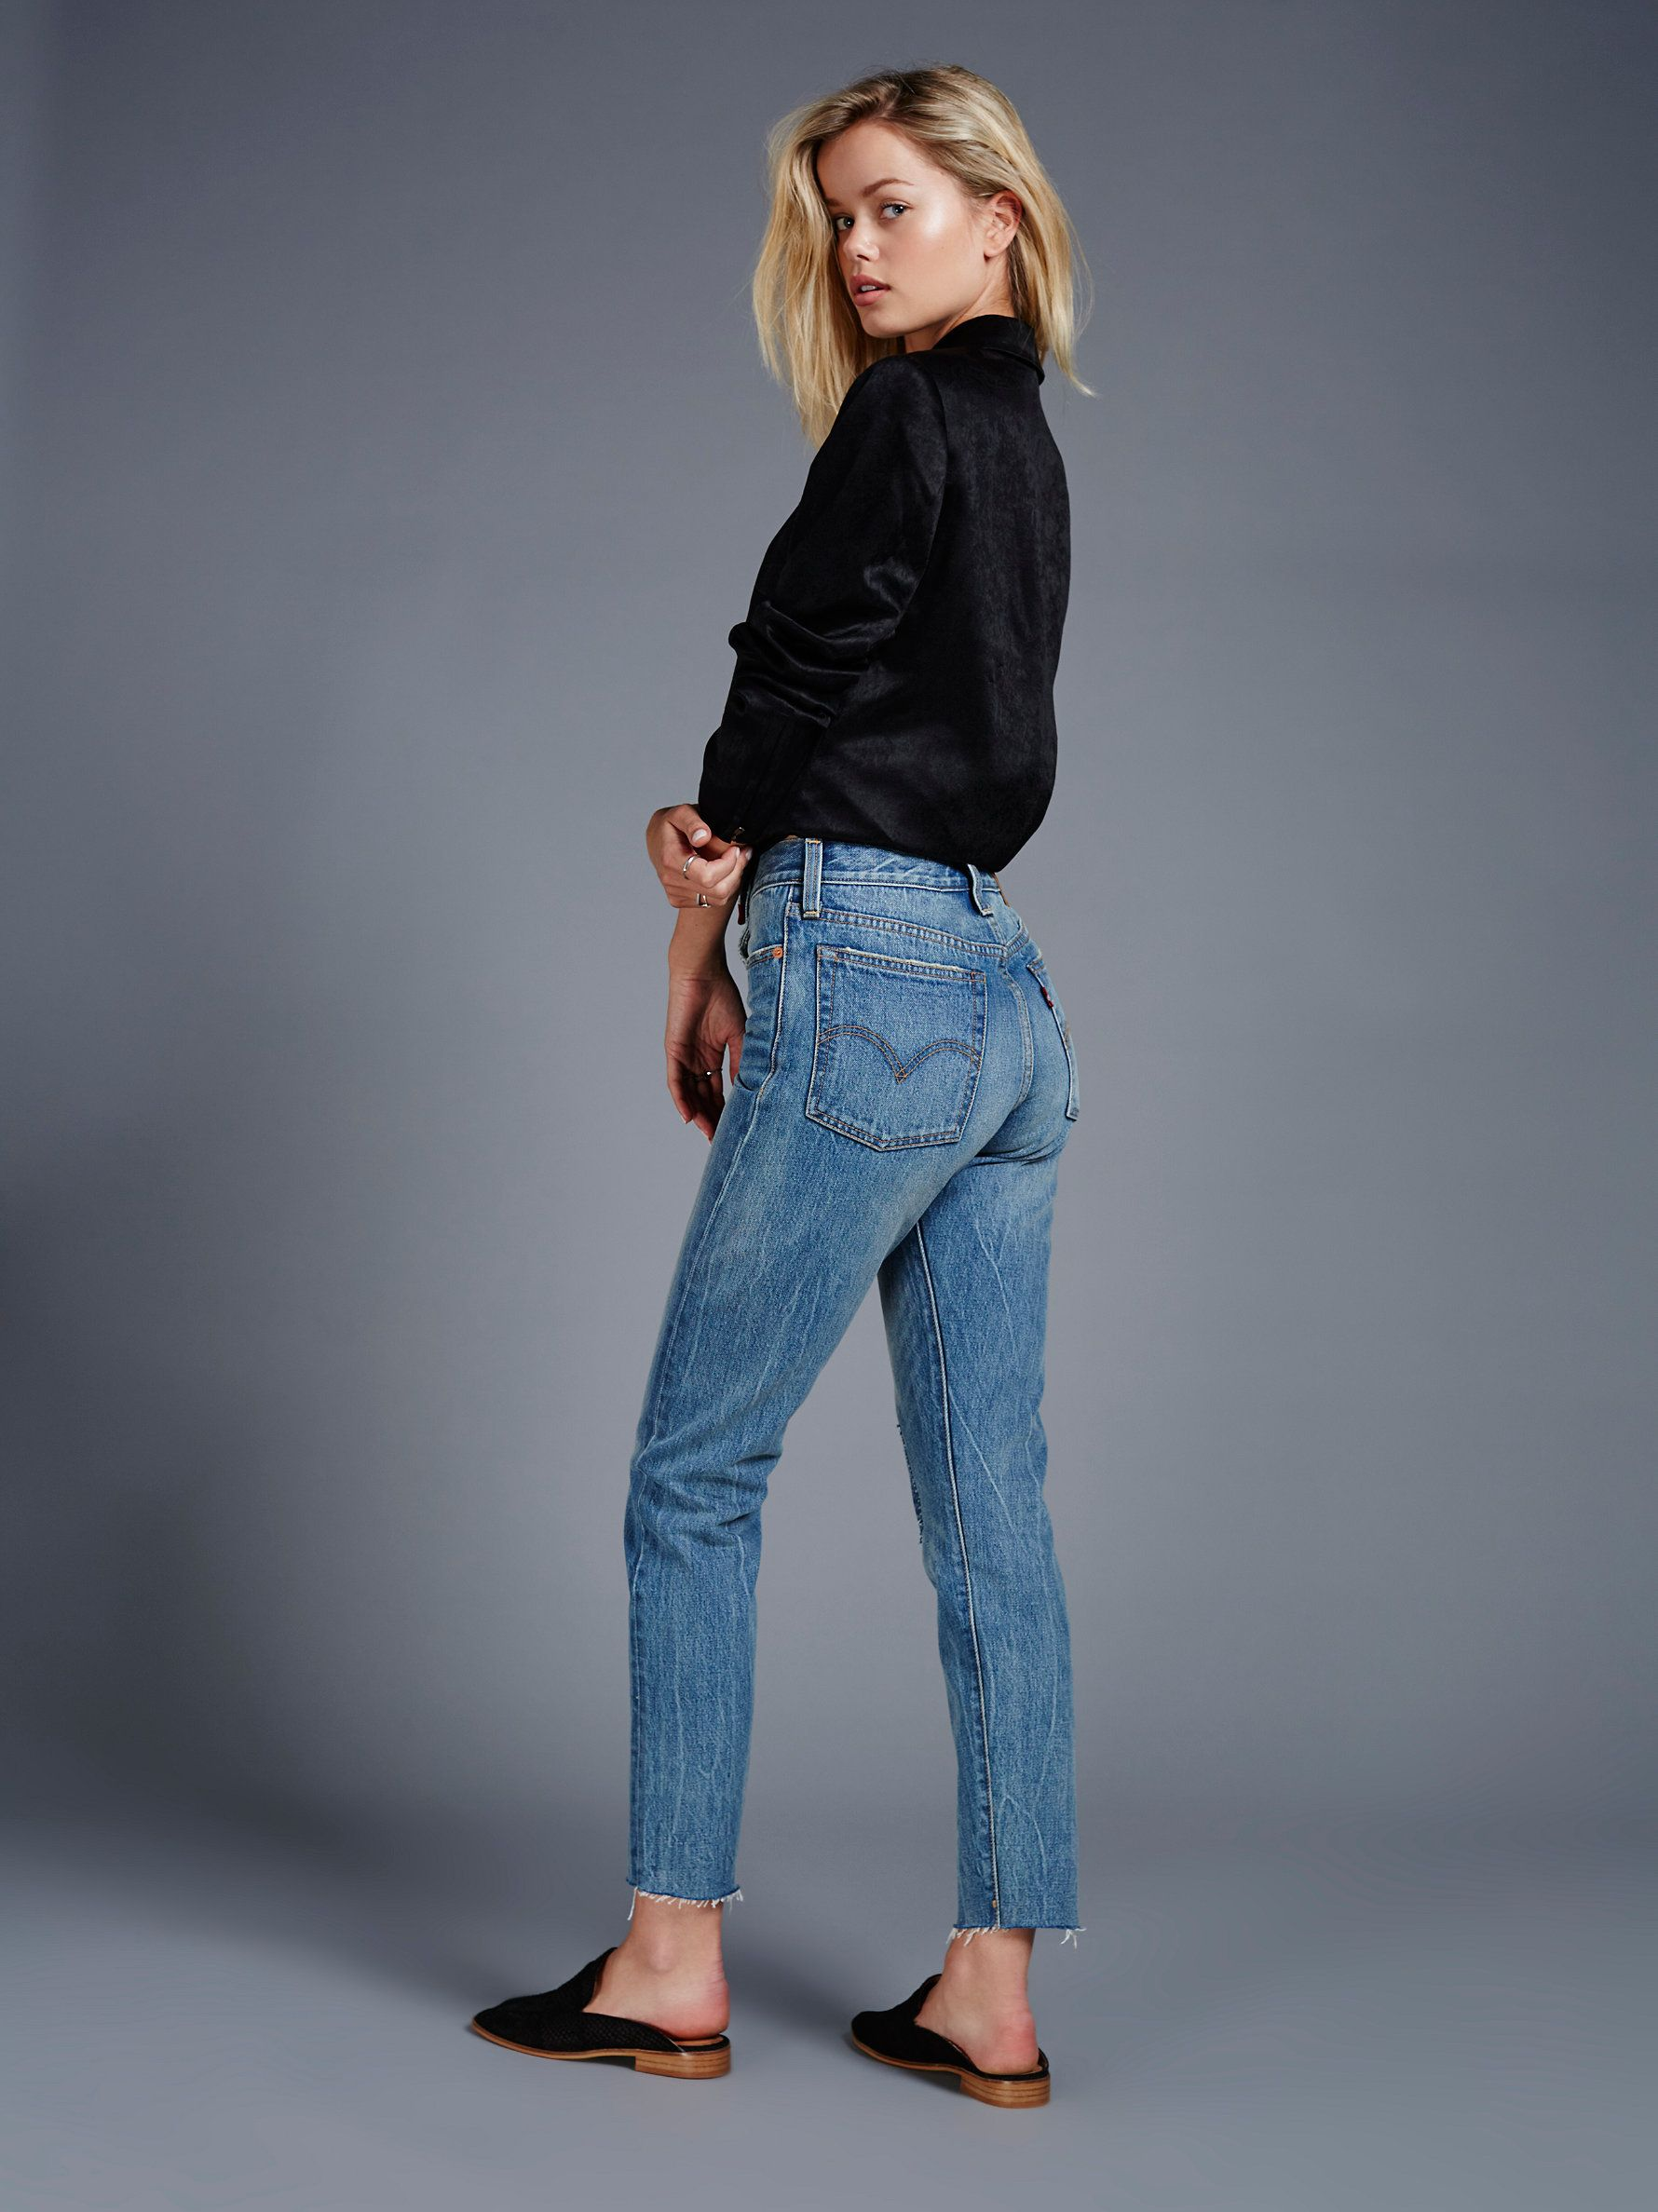 Levi's Wedgie Icon Patched Jeans in 2019 | Art of Style ...